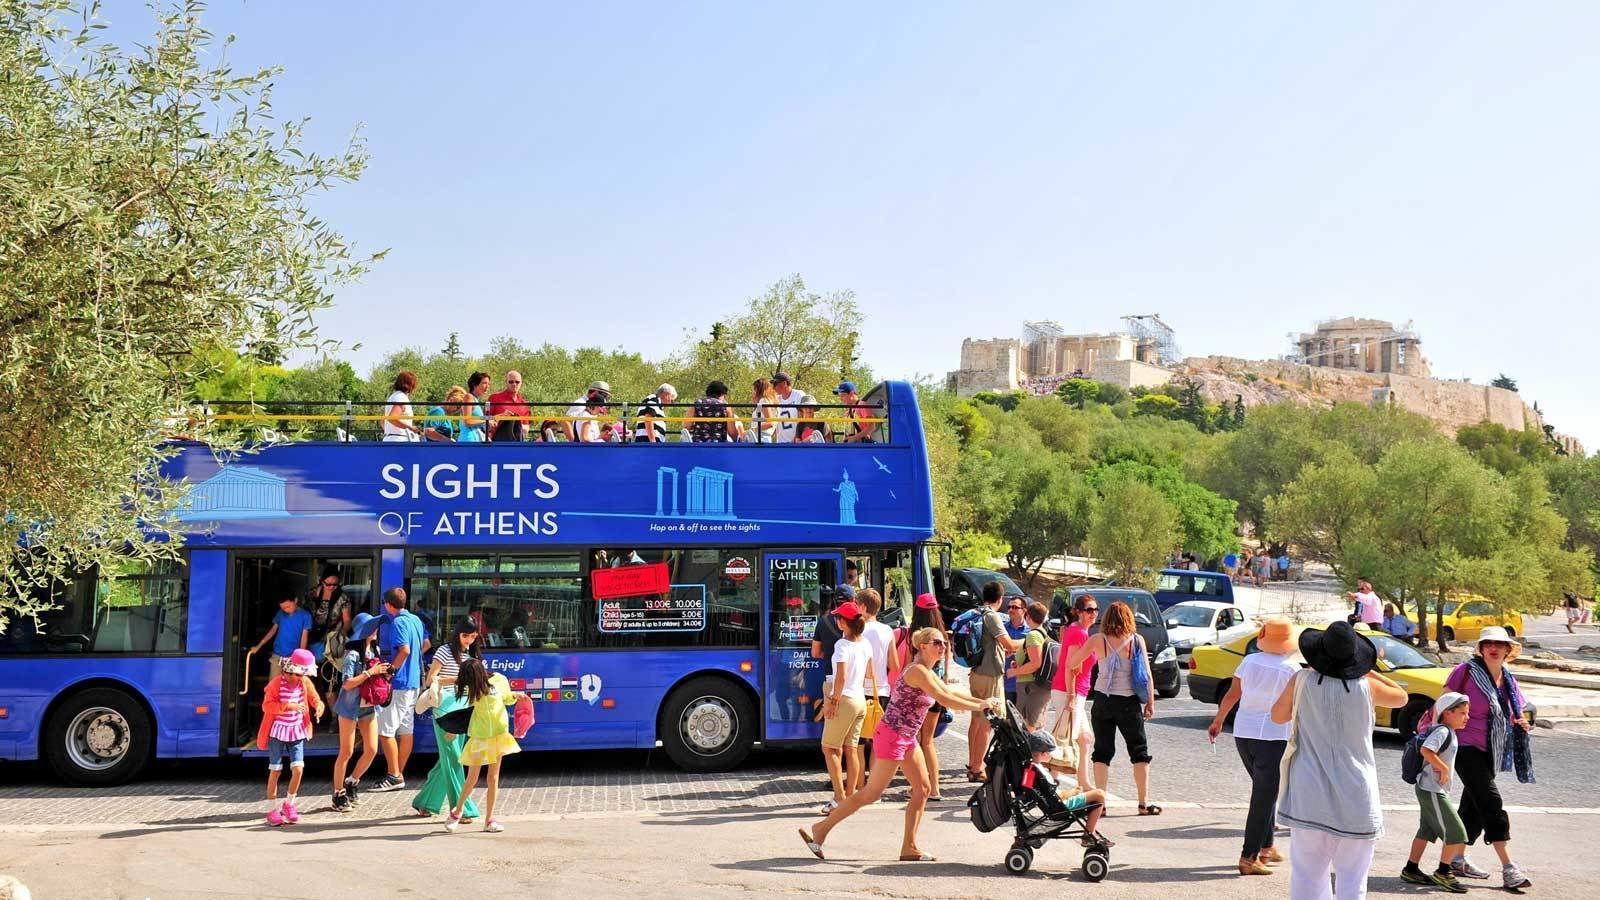 blue double deck bus at a busy intersection in Athens